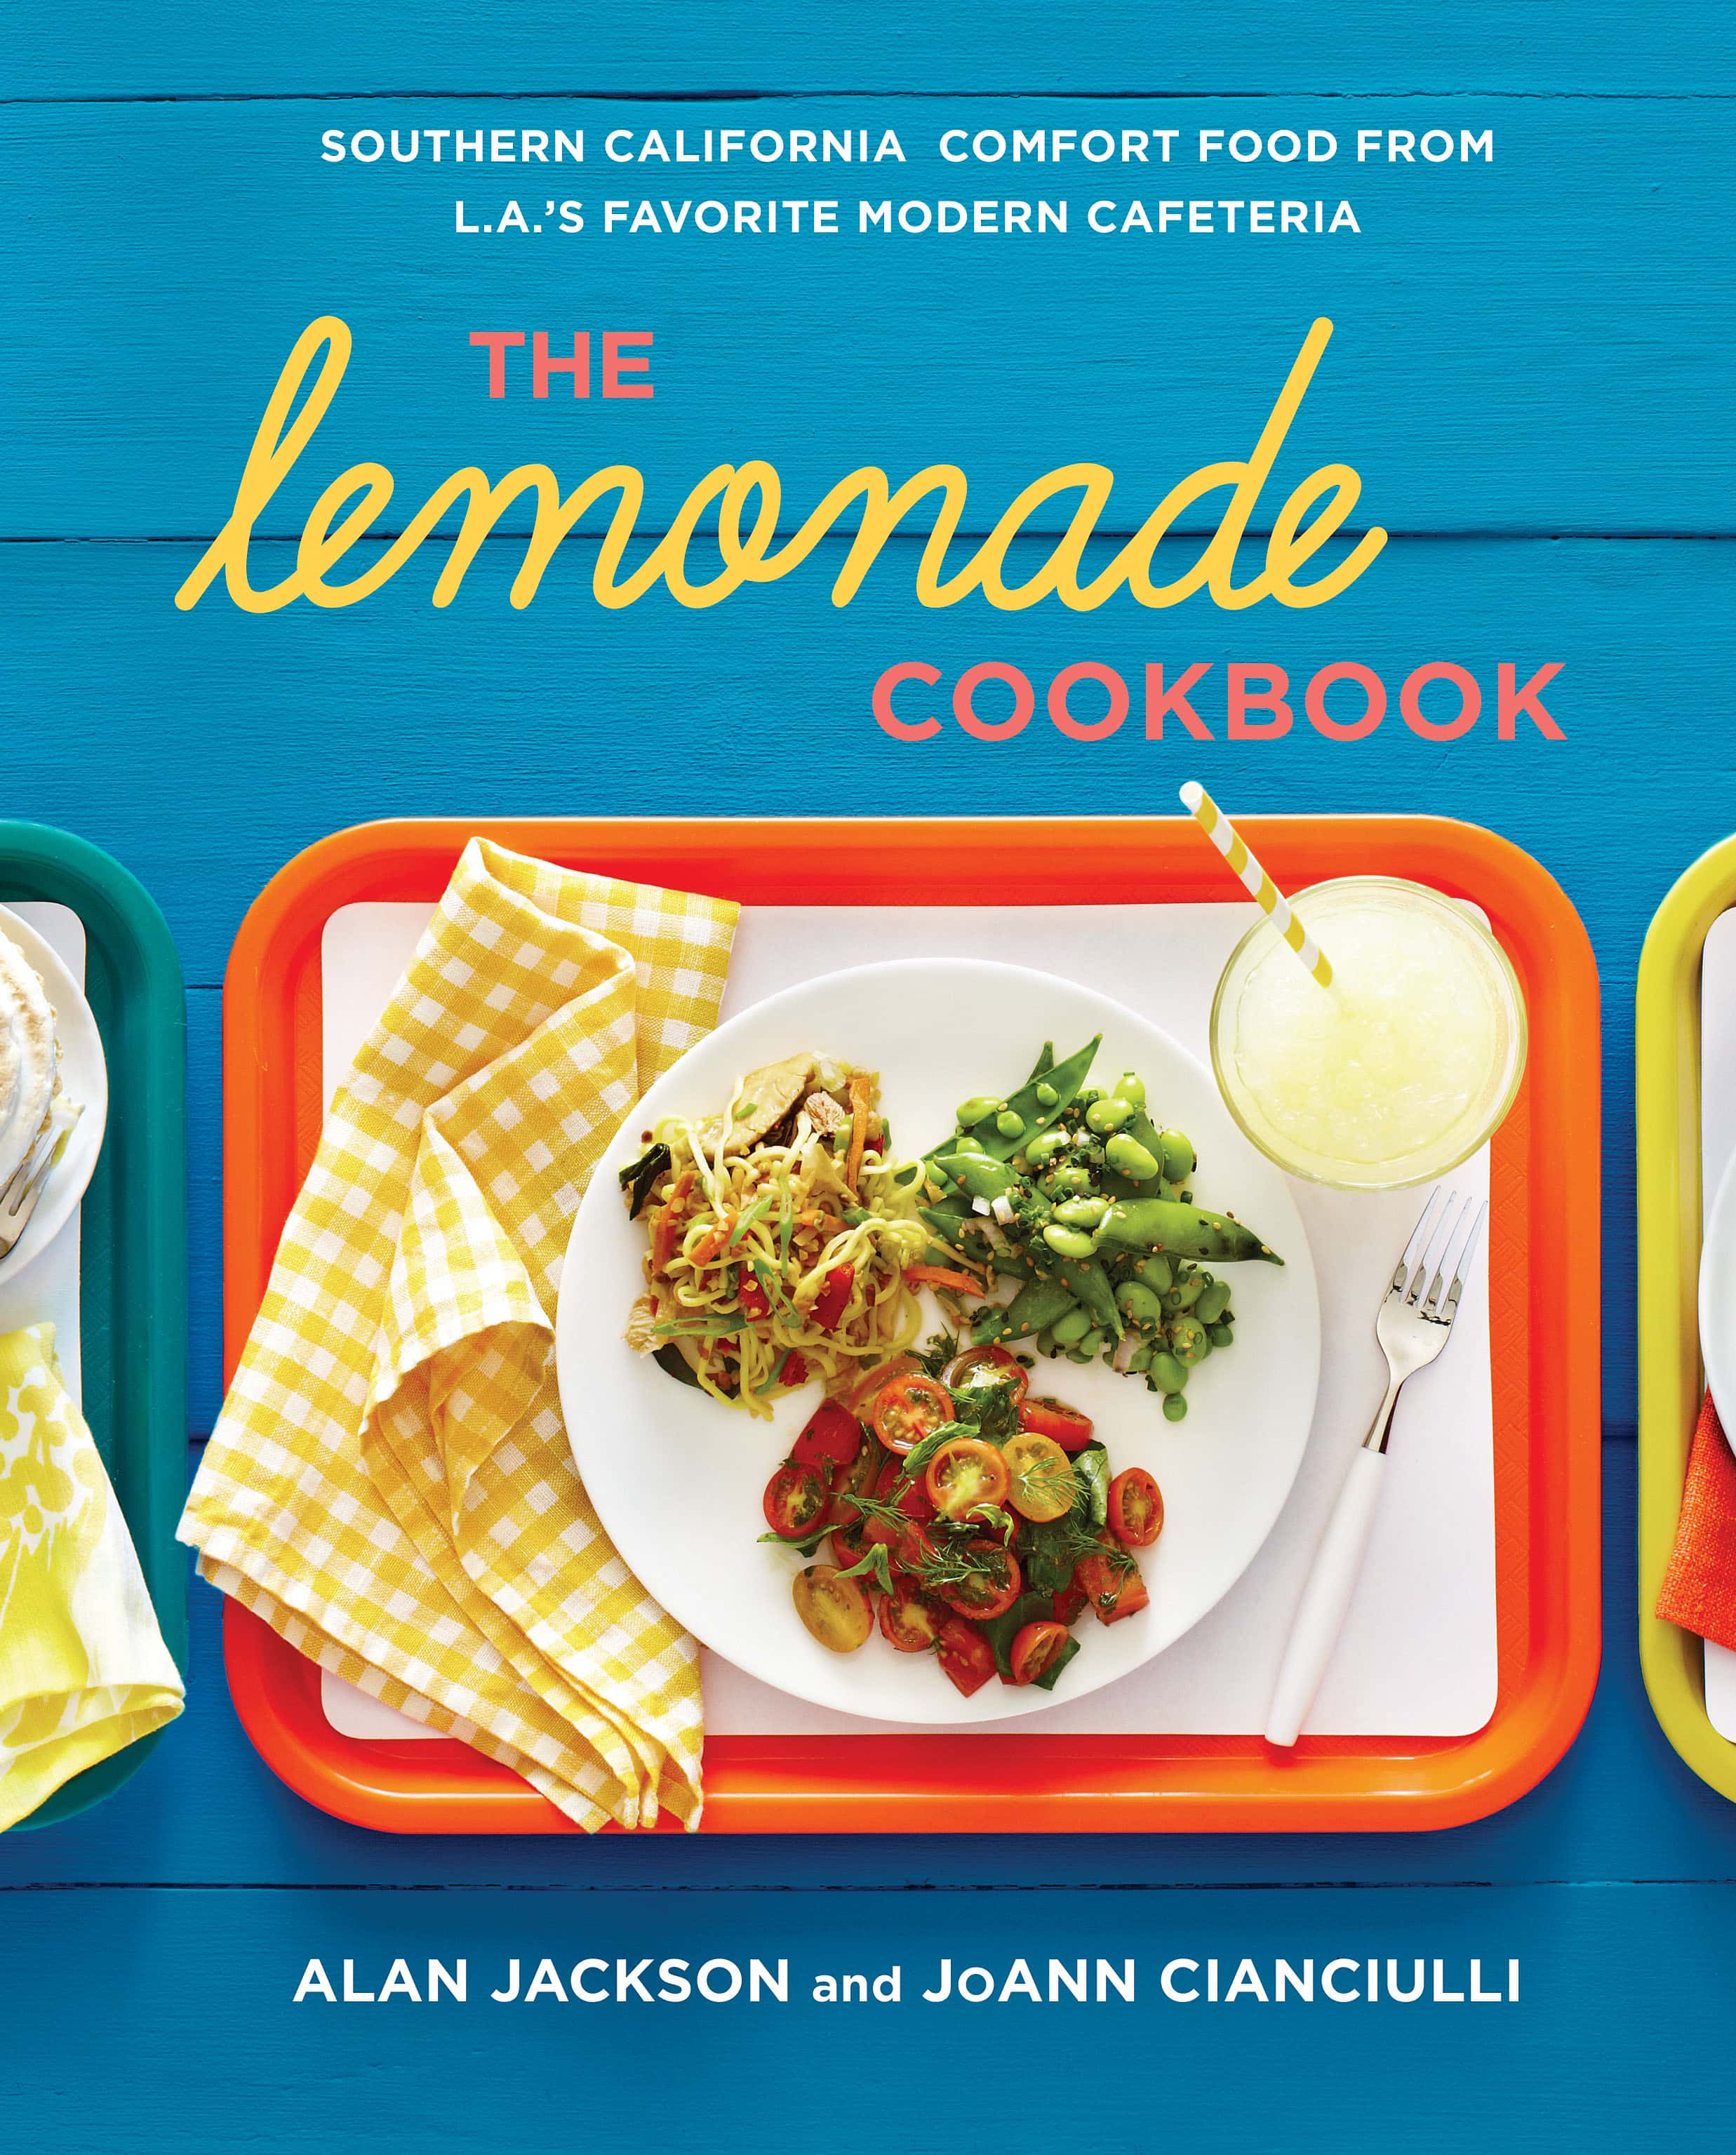 Citrus poached salmon with mustard sauce recipe i can cook that cover lemonade cookbook the forumfinder Choice Image